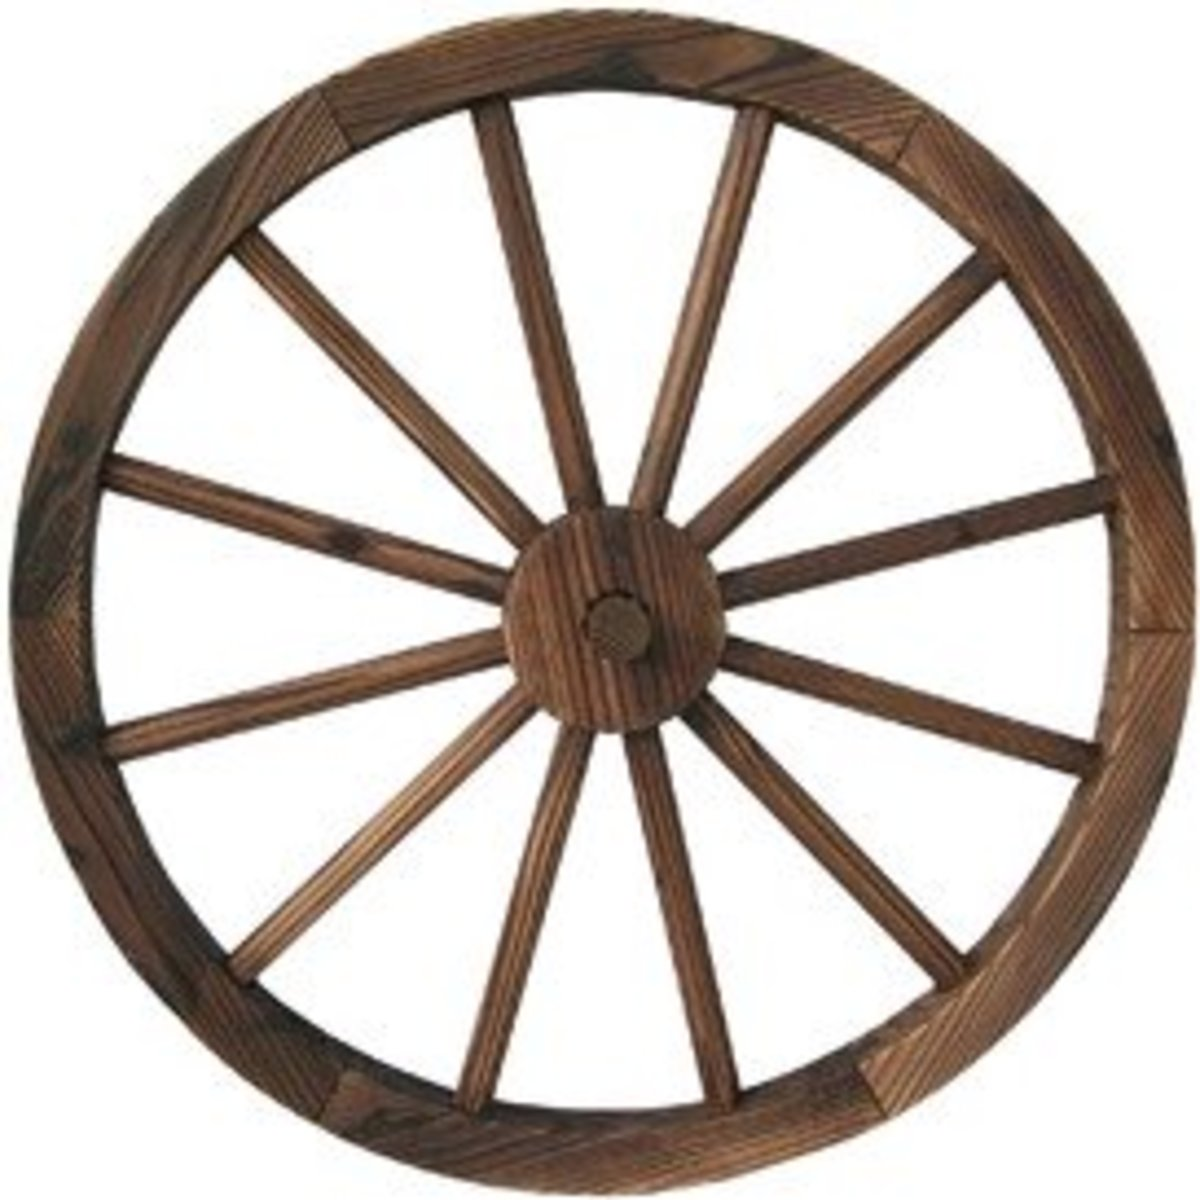 The wheel weaves as the wheel wills. But when the wheel wills to tell a story in over 700 pages that could be said in about 250, it gets a little annoying.